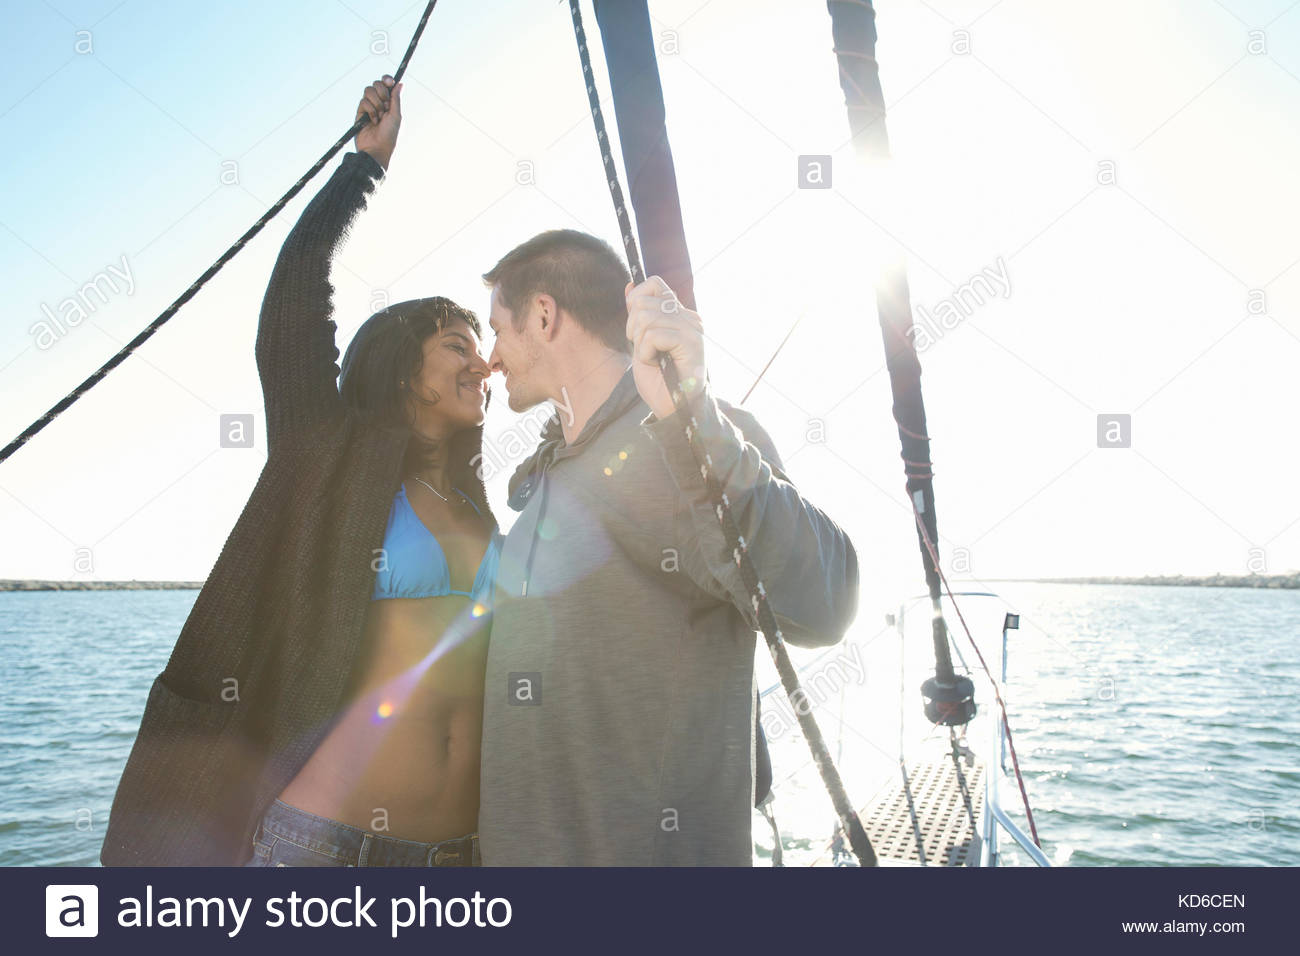 Affectionate couple kissing on sailboat on sunny ocean - Stock Image